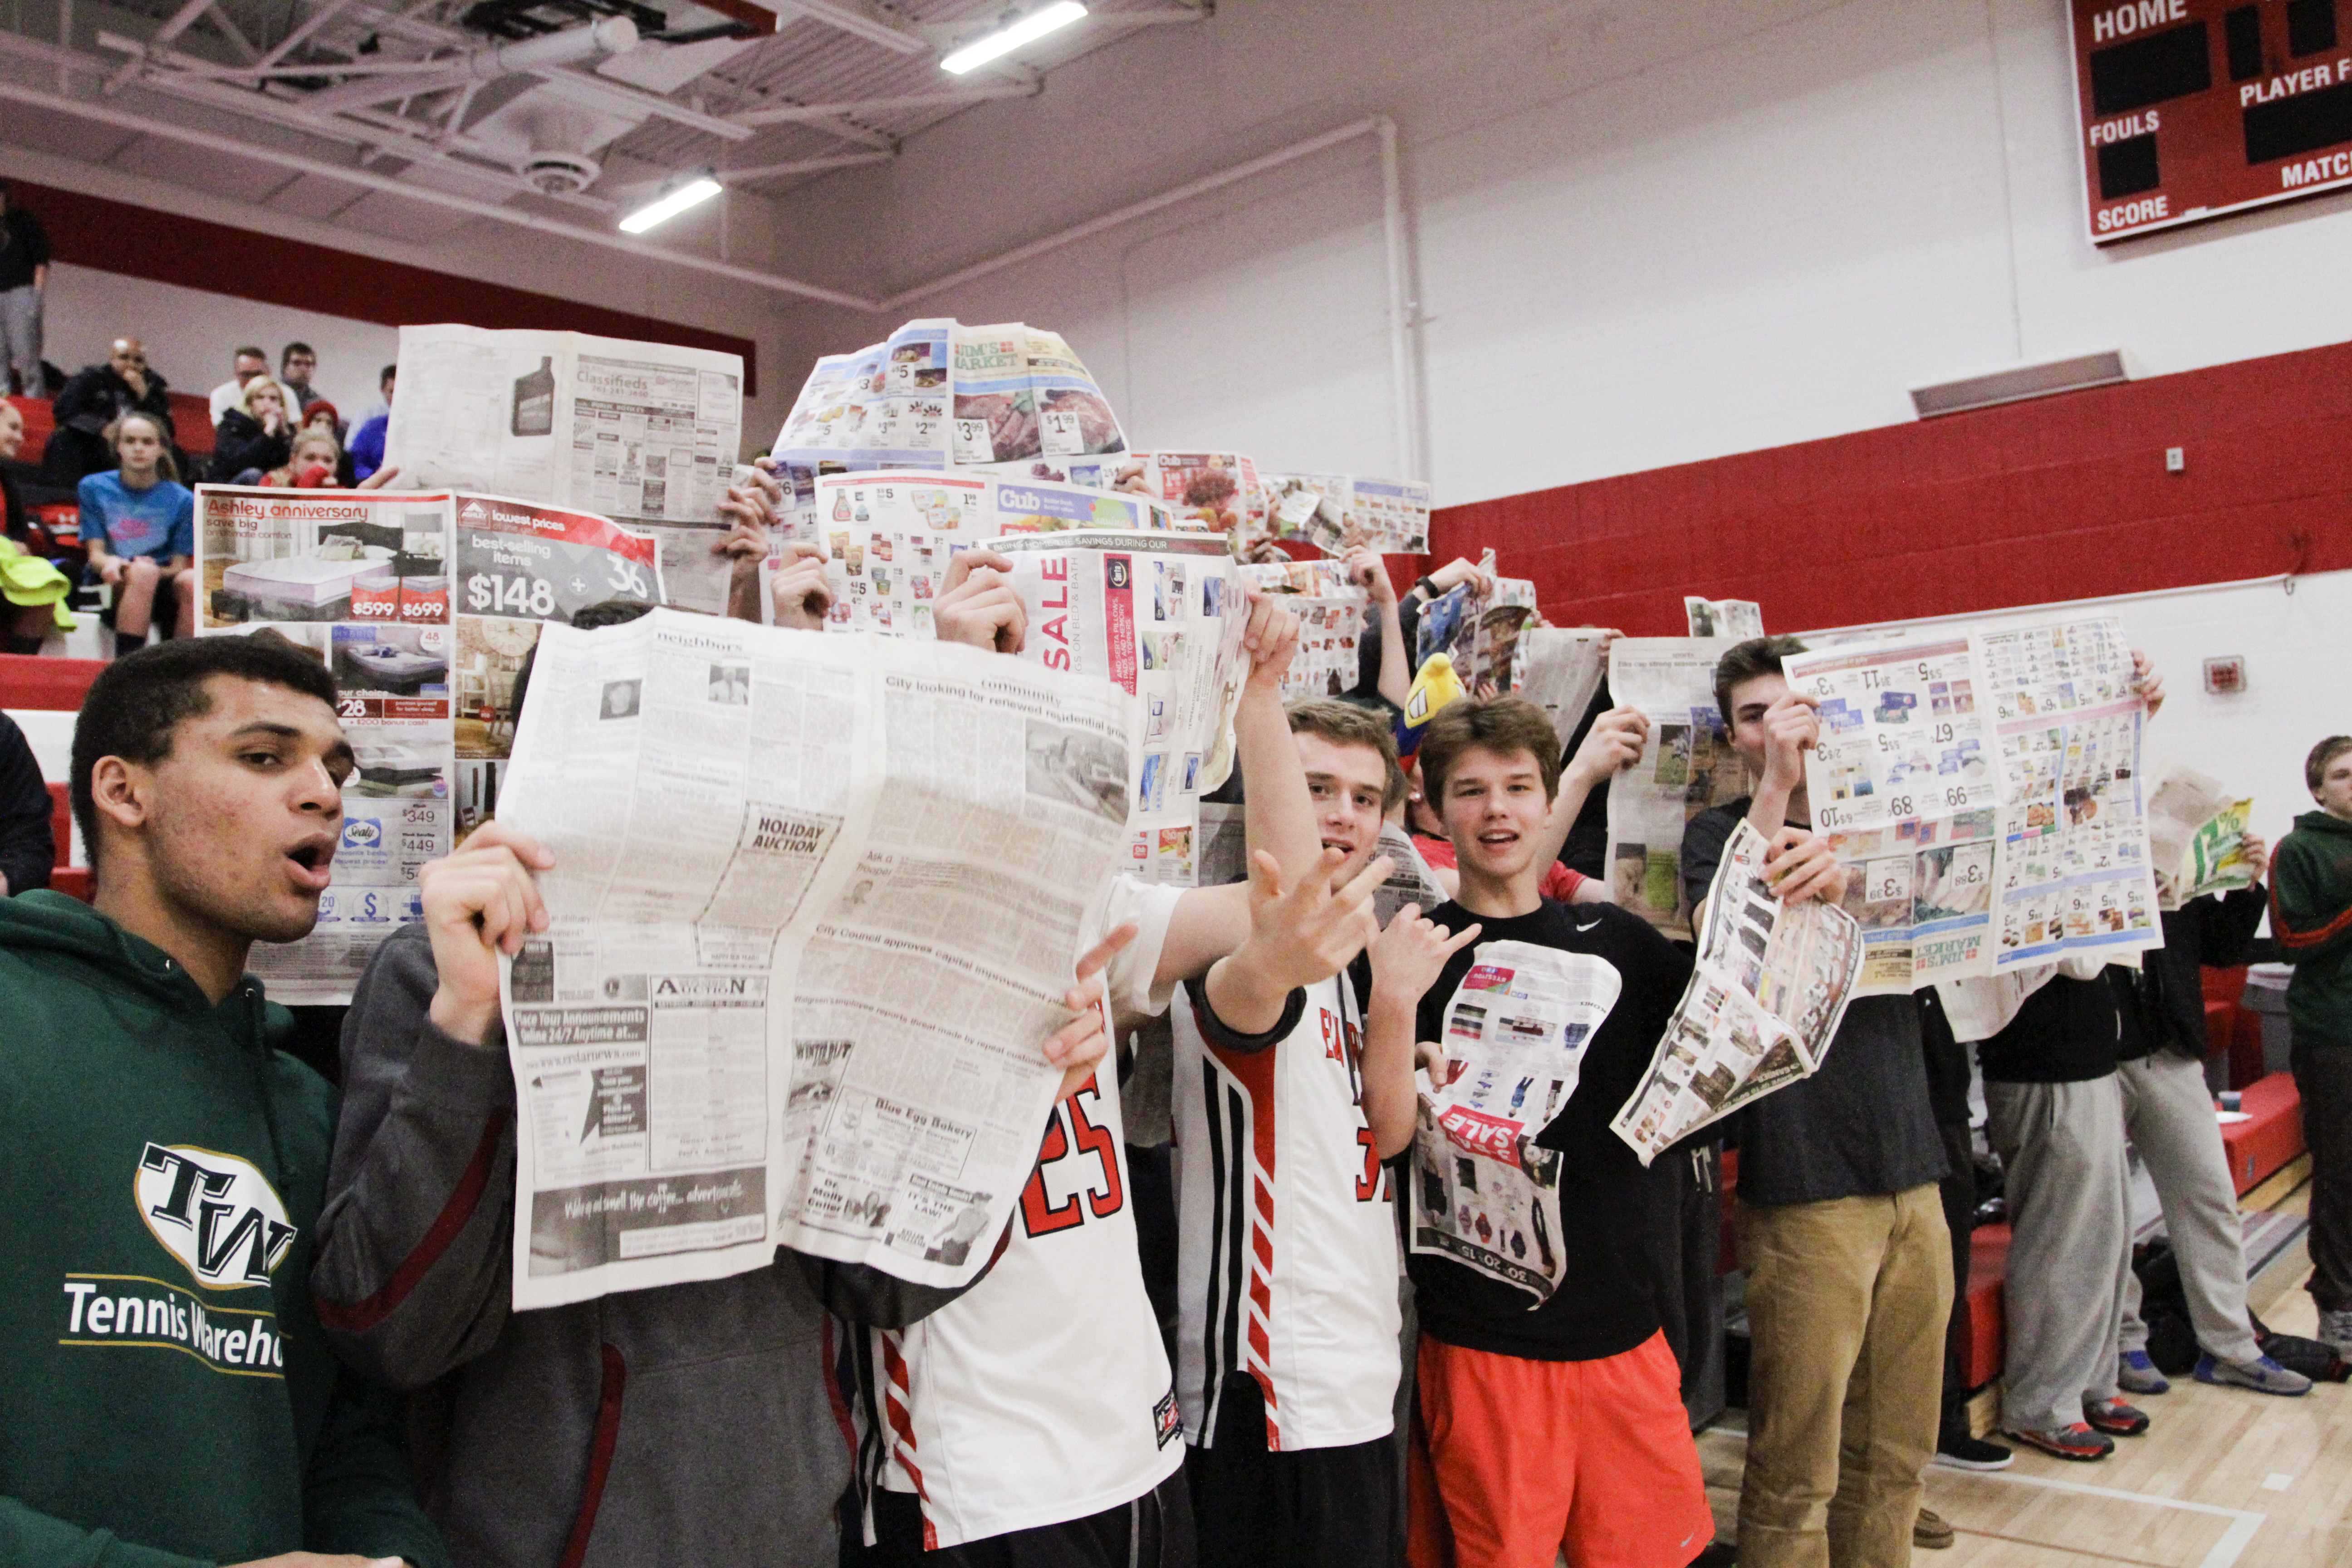 Elk River students hold newspapers up during the introduction of the opposing teams players. Photo by Chris Juhn